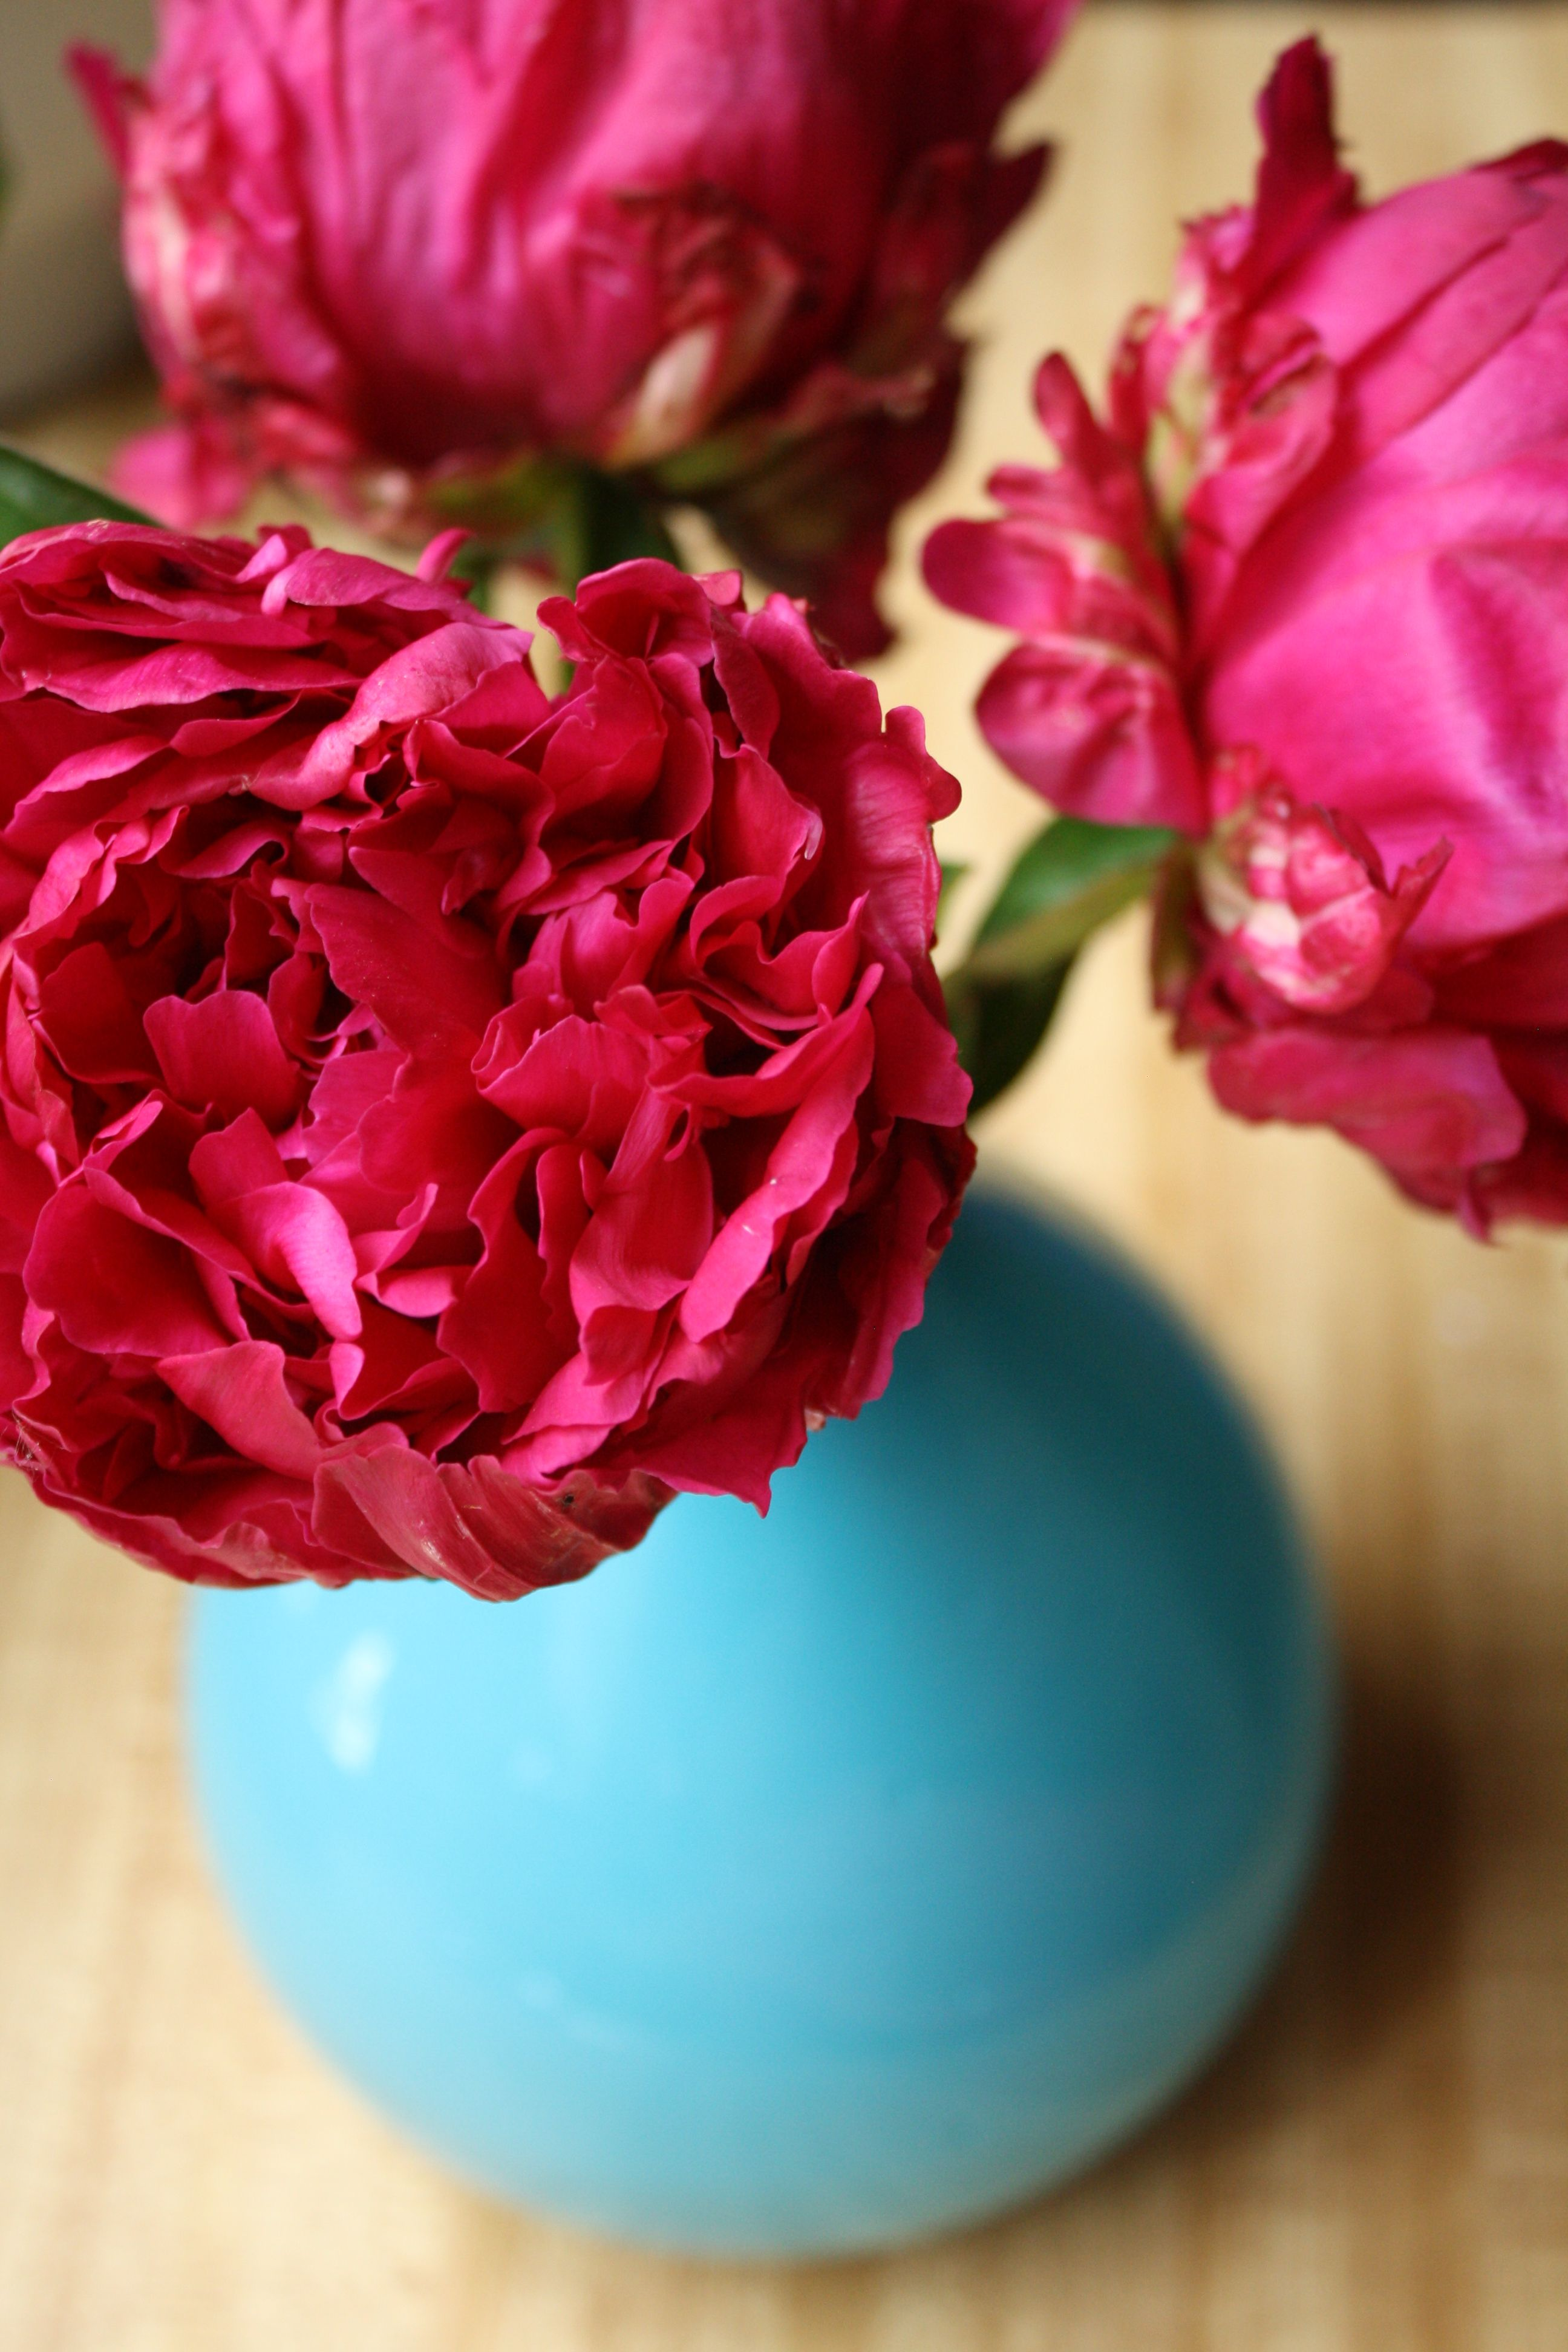 peonies are lush and decadent